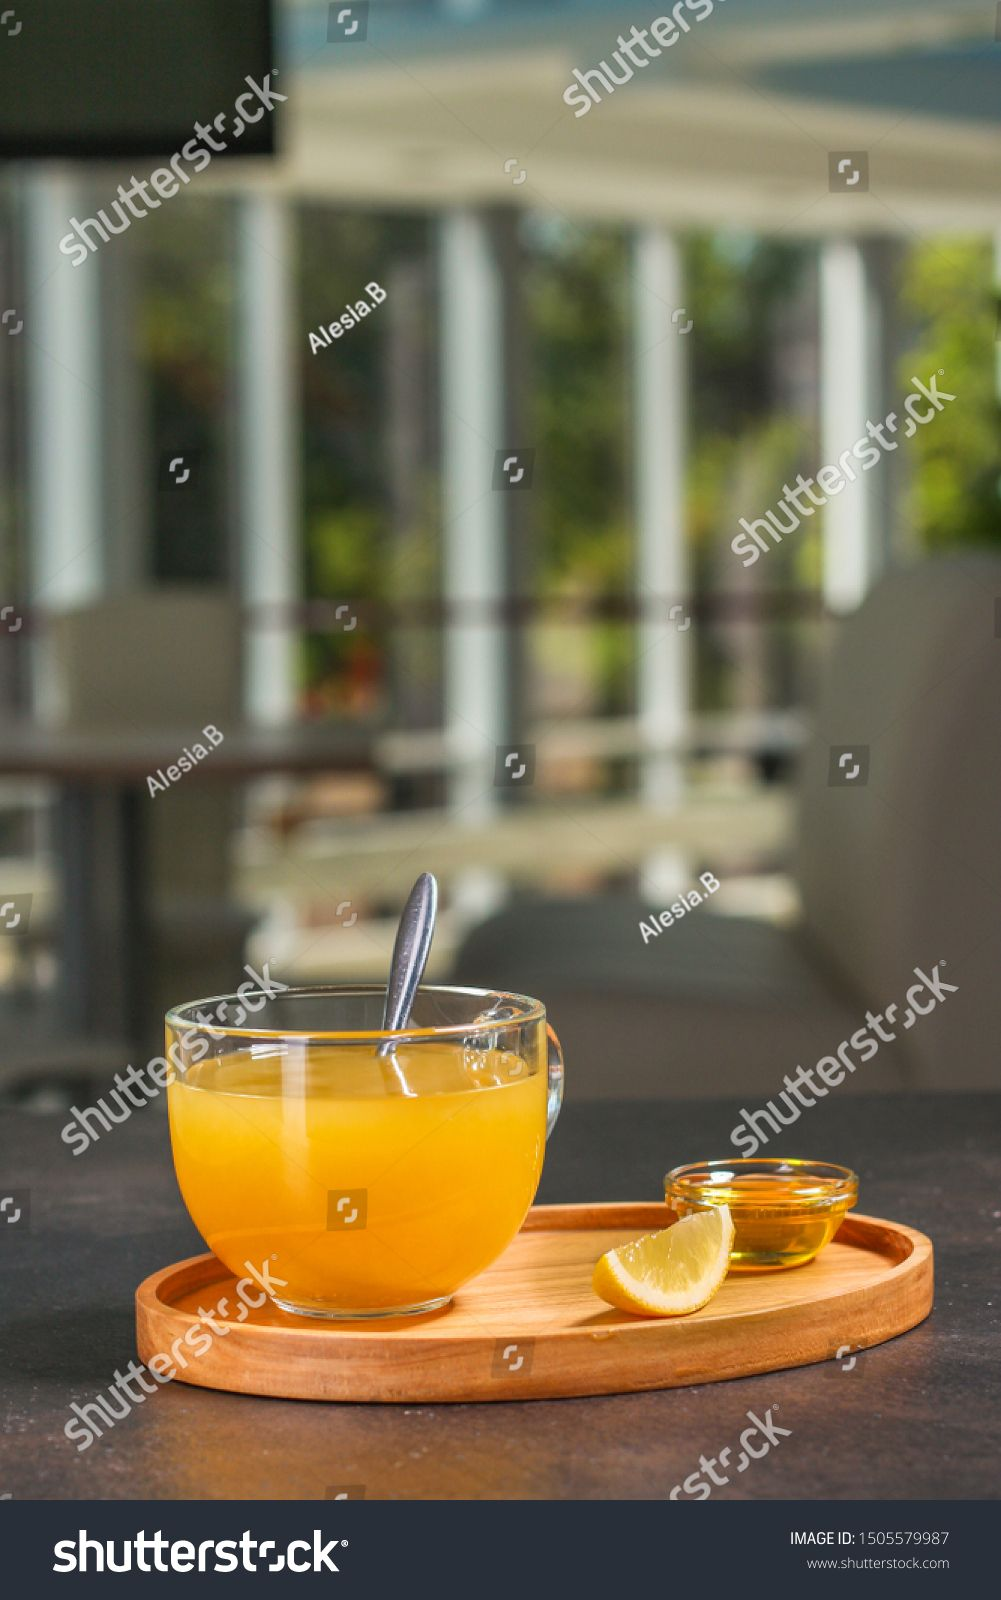 tea, honey, lemon and sea buckthorn (aromatic mustard drink in a cafe restaurant) menu concept. food background. copy space. Top view #Sponsored , #Ad, #mustard#aromatic#cafe#drink